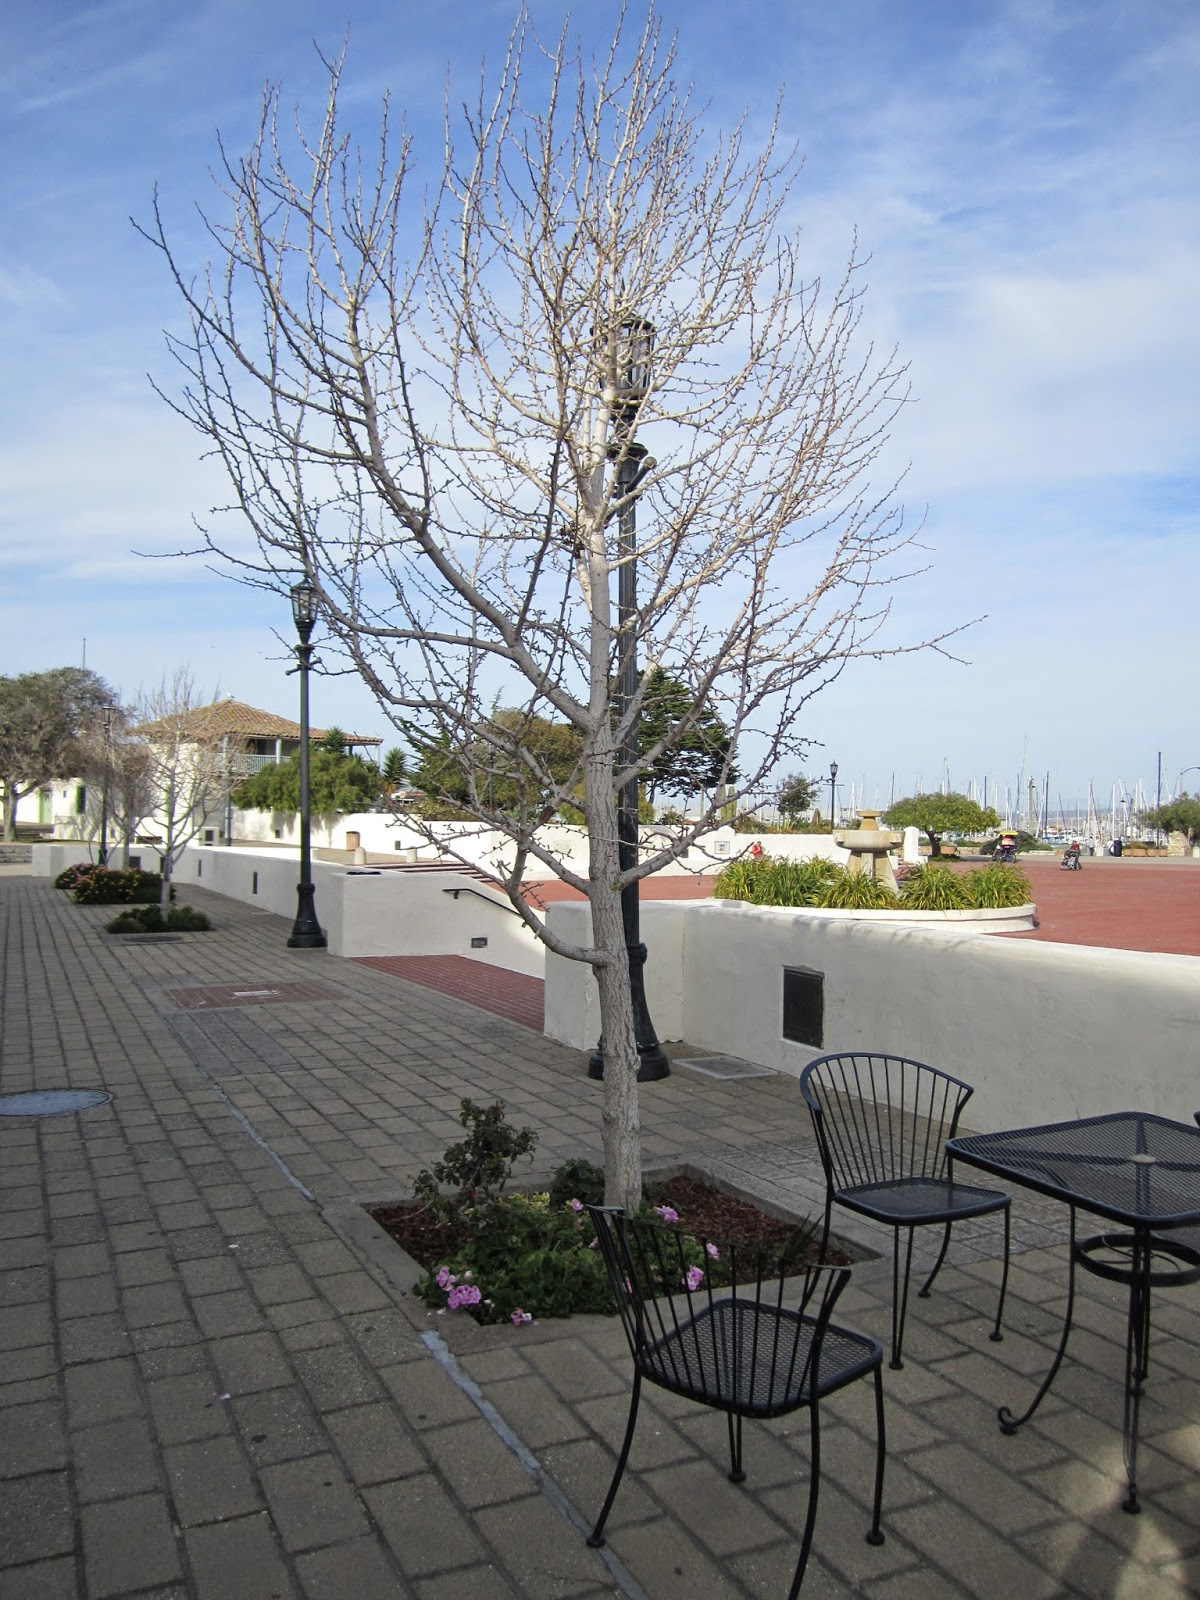 A Hibernating Tree, Custom House Plaza, Monterey State Historic Park (March 2013)